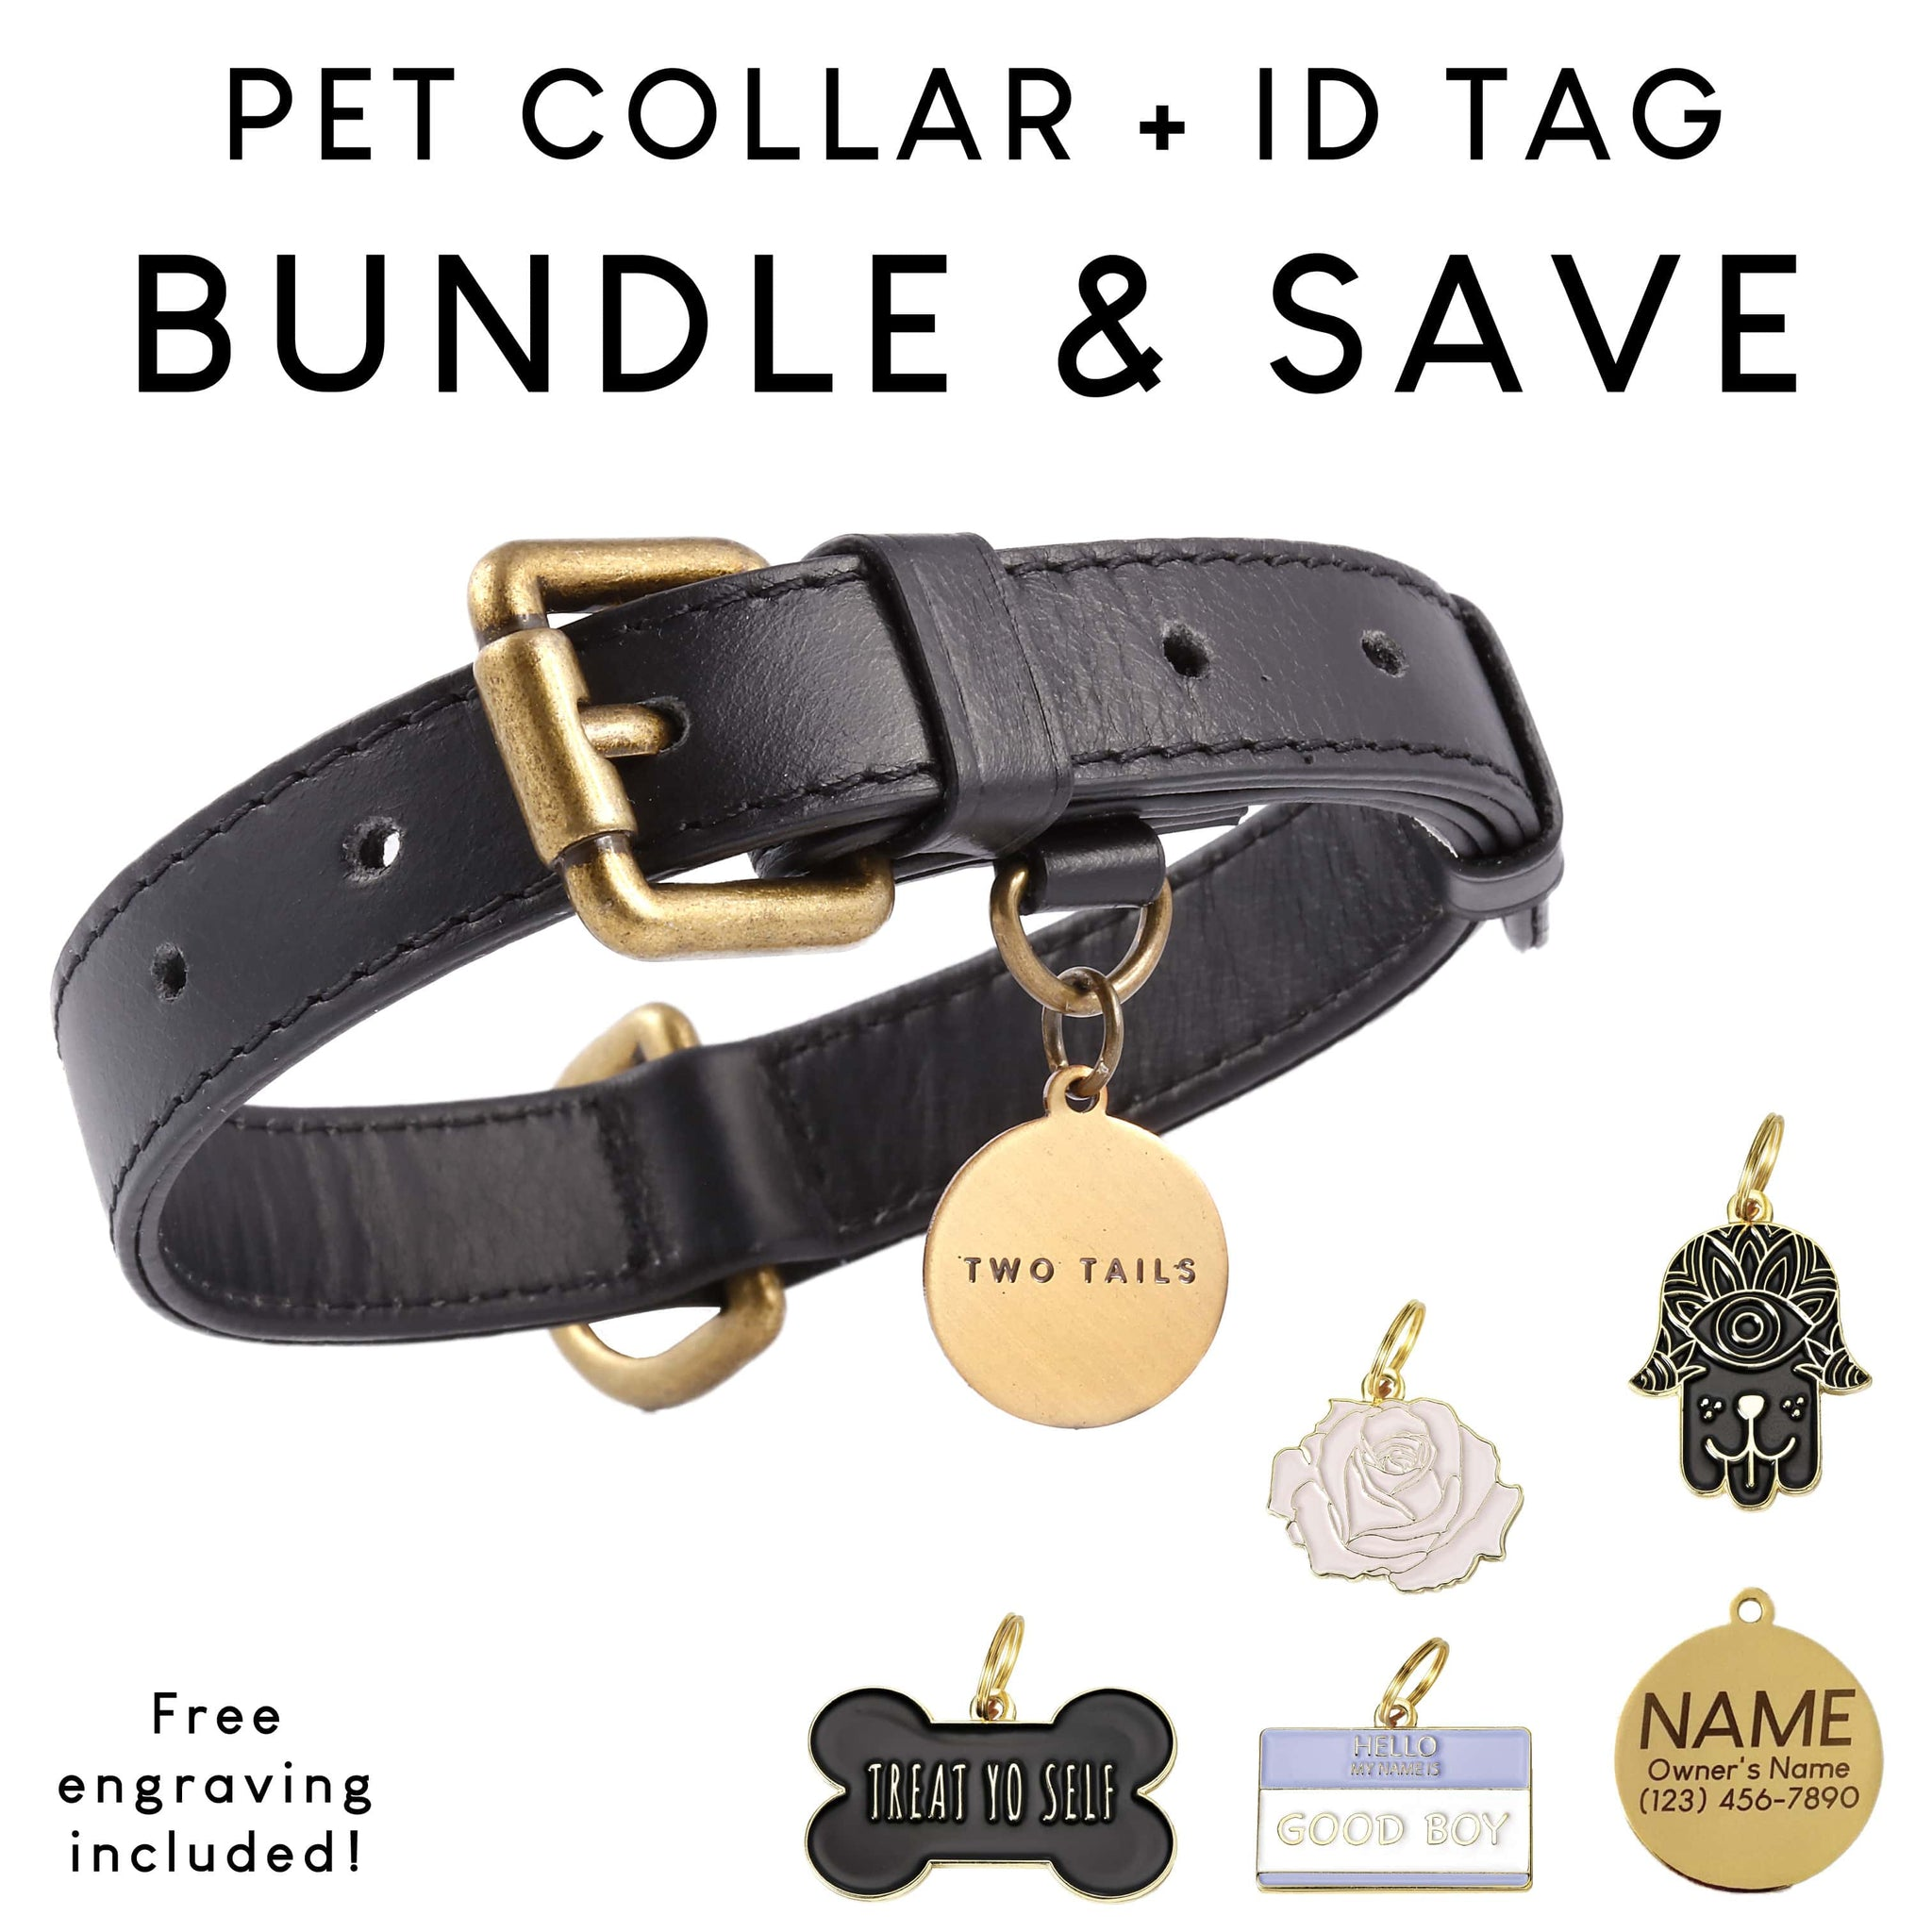 Collar (Black) & ID Tag Bundle